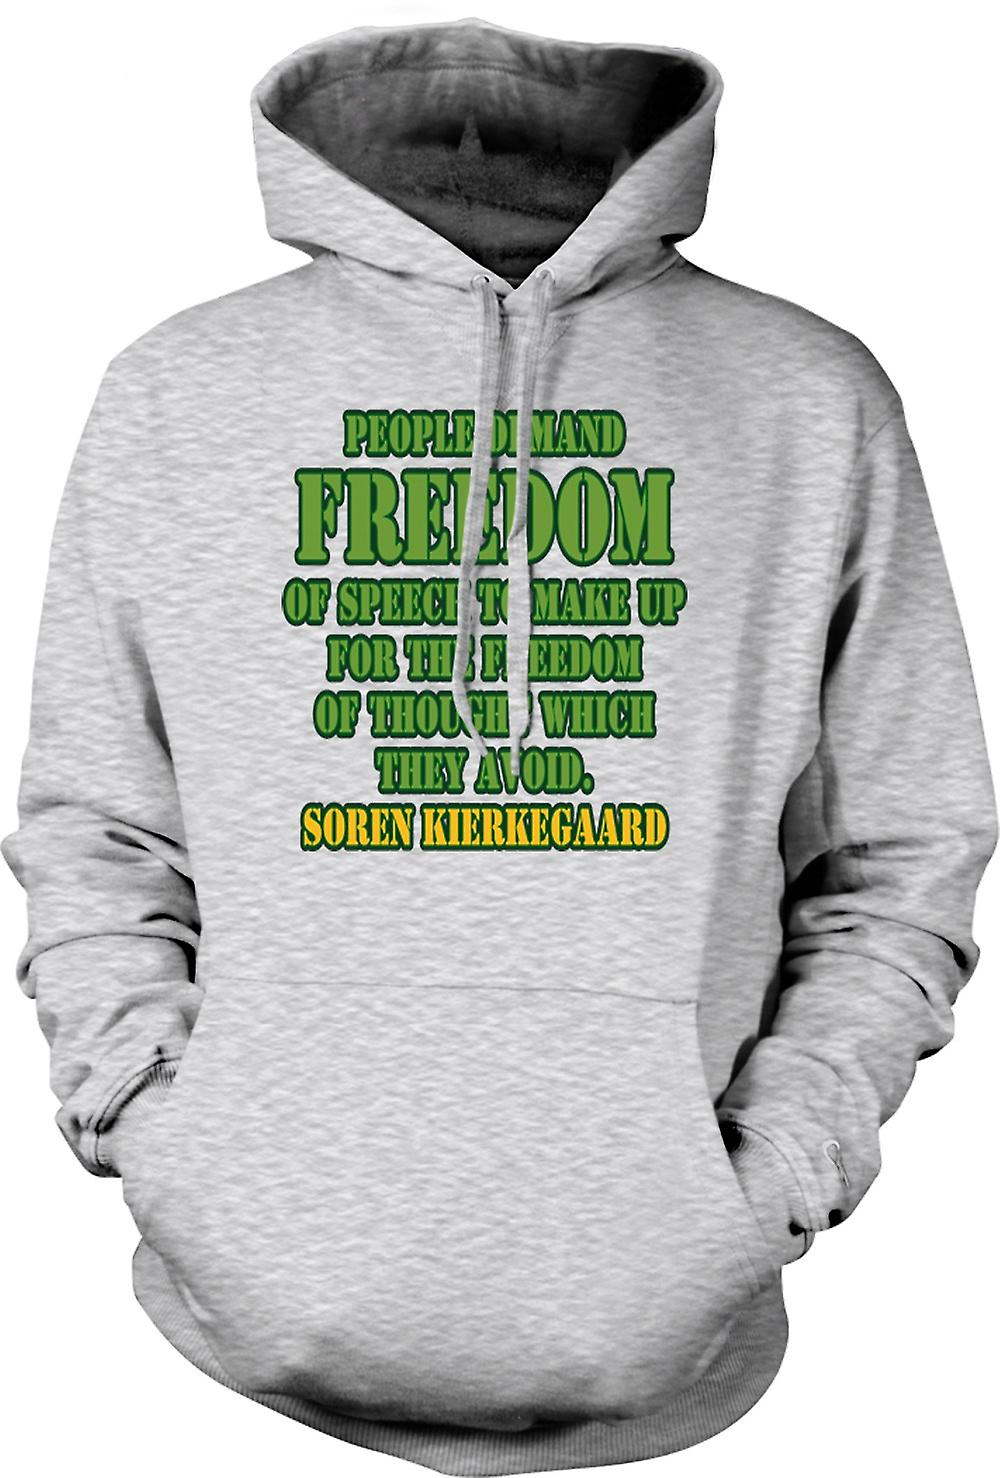 Mens Hoodie - People Demand Freedom Of Speech - Soren Kierkegaard